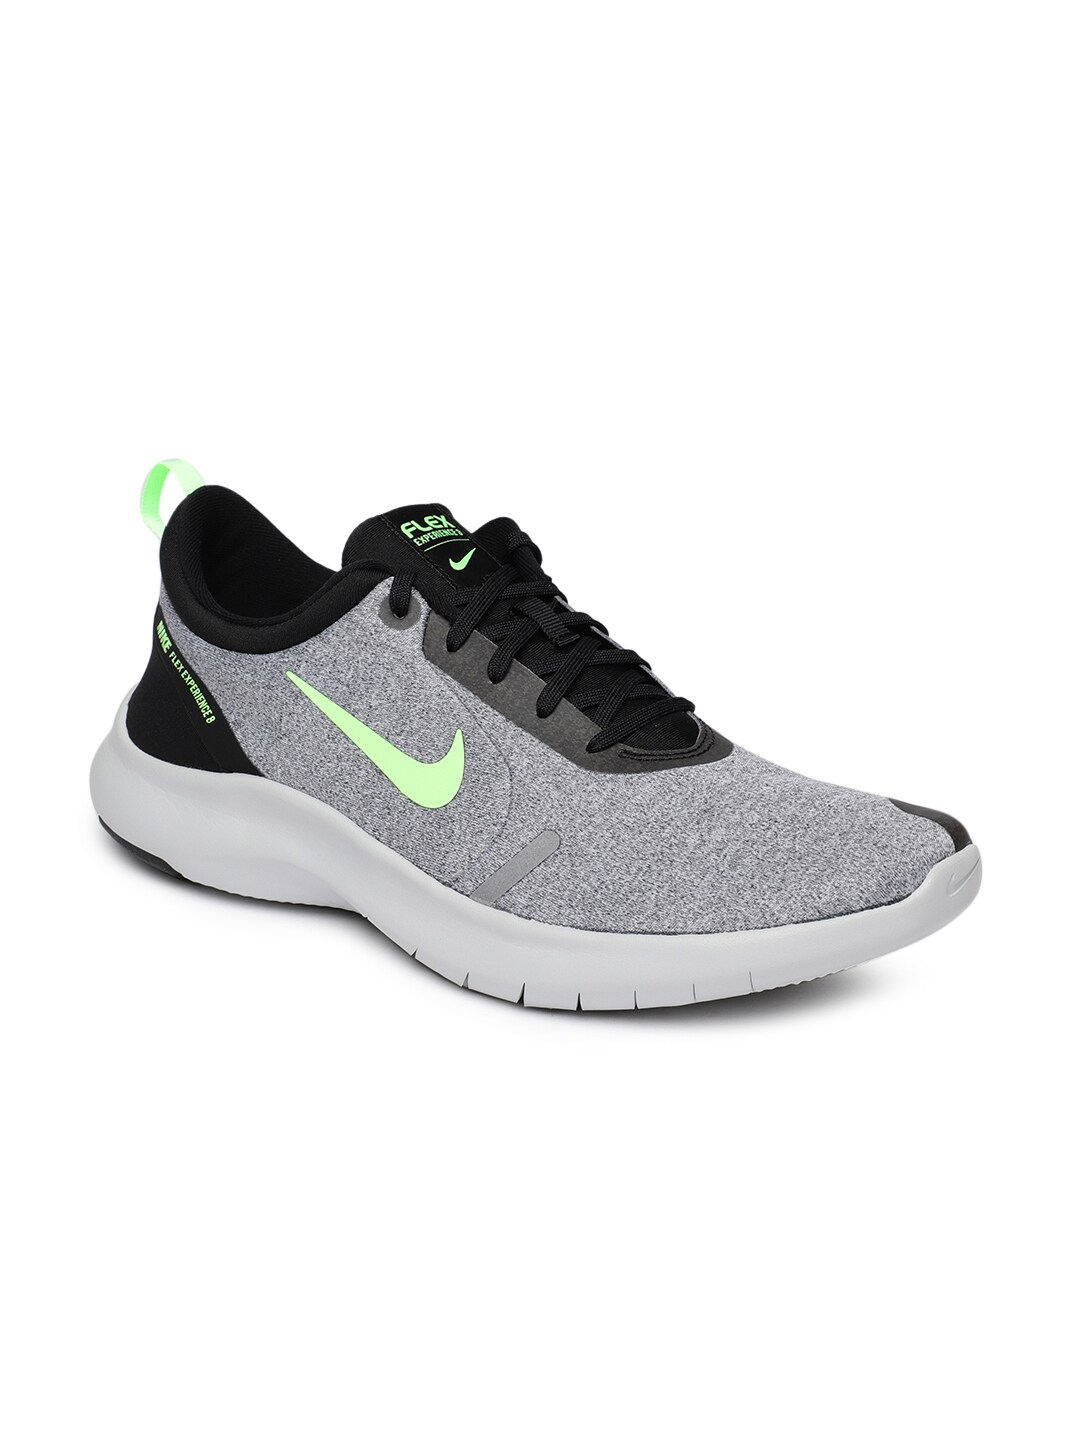 20271ce4b364 Nike Sport Shoe - Buy Nike Sport Shoes At Best Price Online